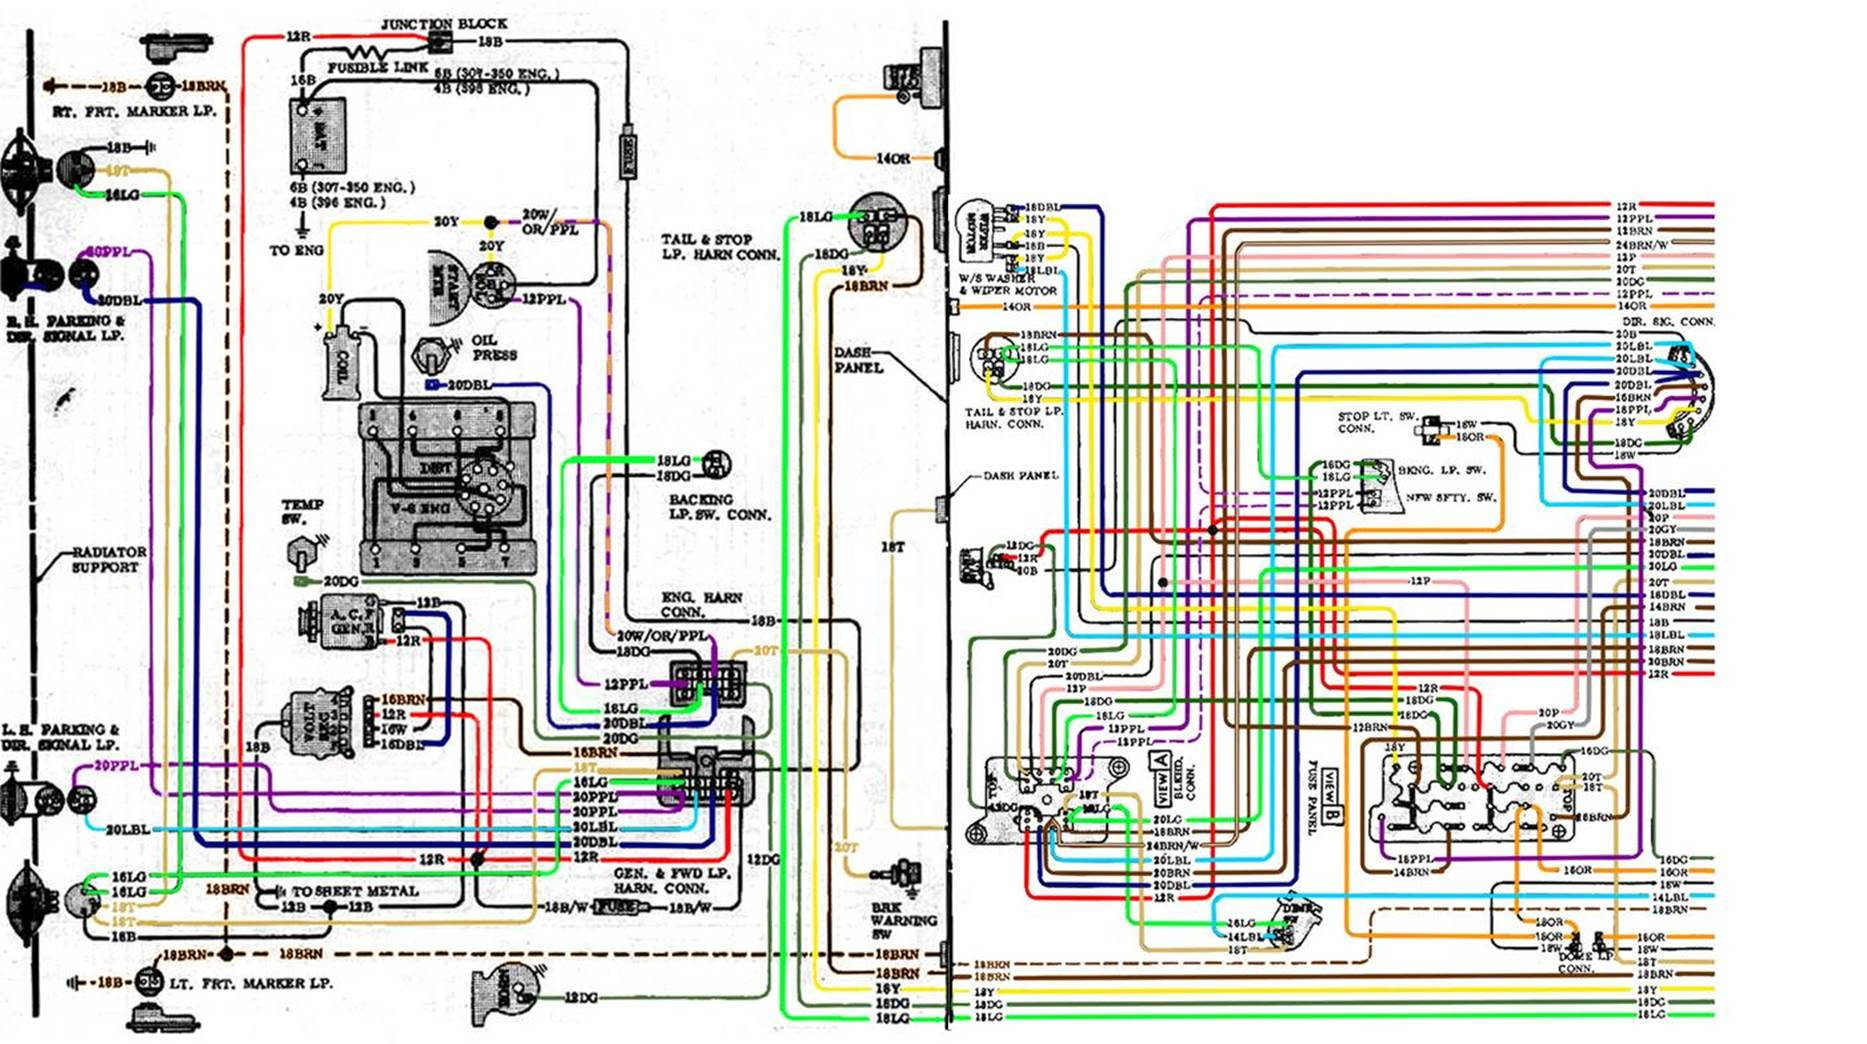 image002 67 72 chevy wiring diagram  at soozxer.org